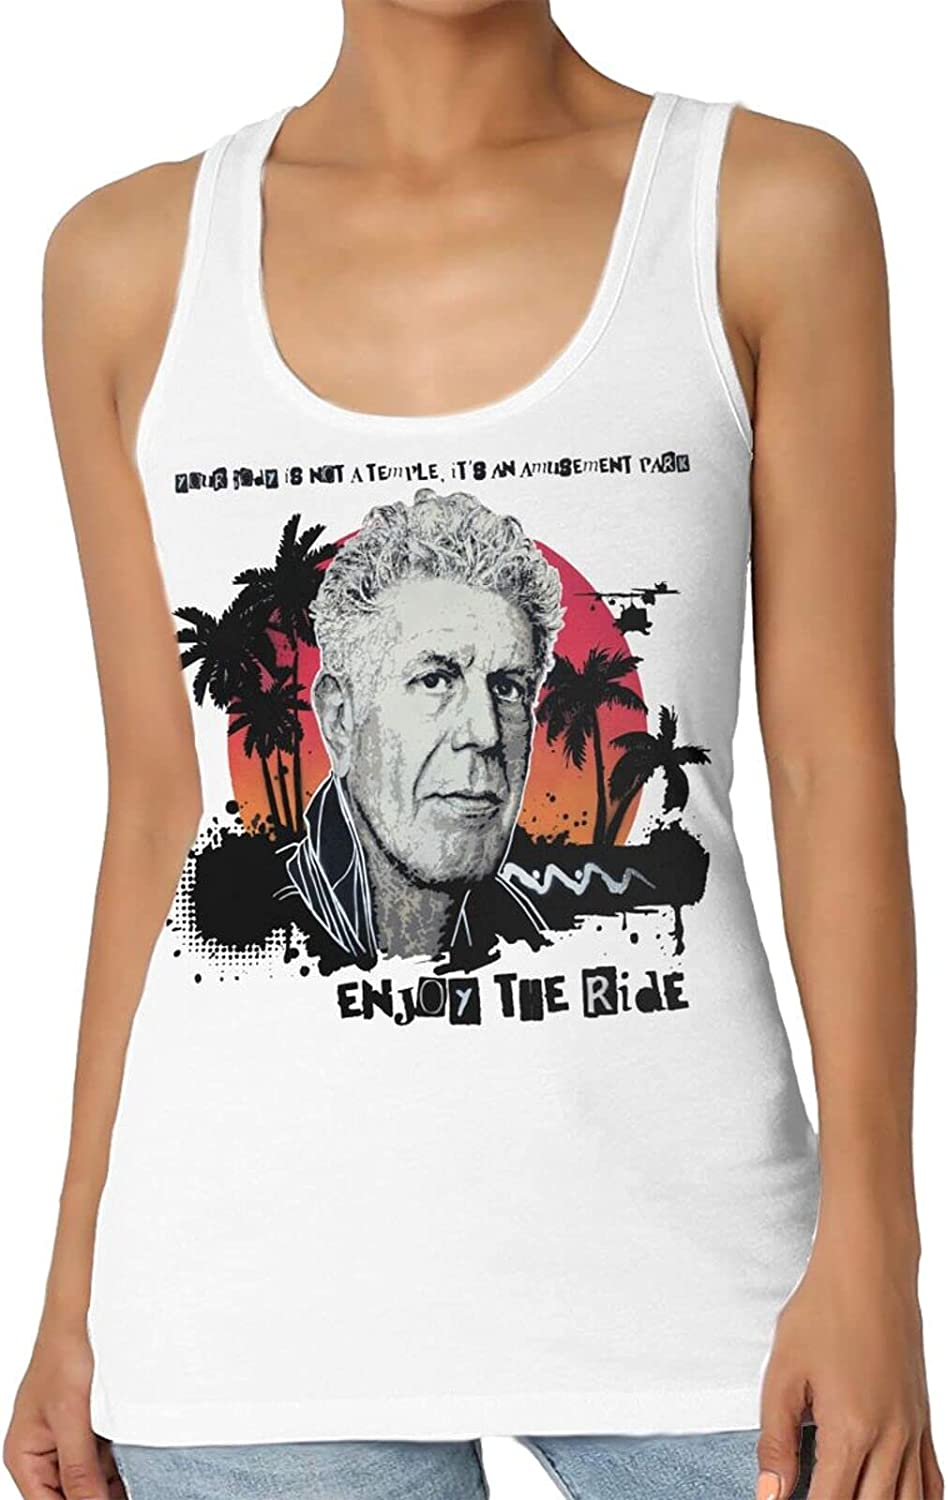 yechunrong Anthony Bourdain Tank Top Women's Summer Casual 3D Printed Sleeveless Shirts Vest